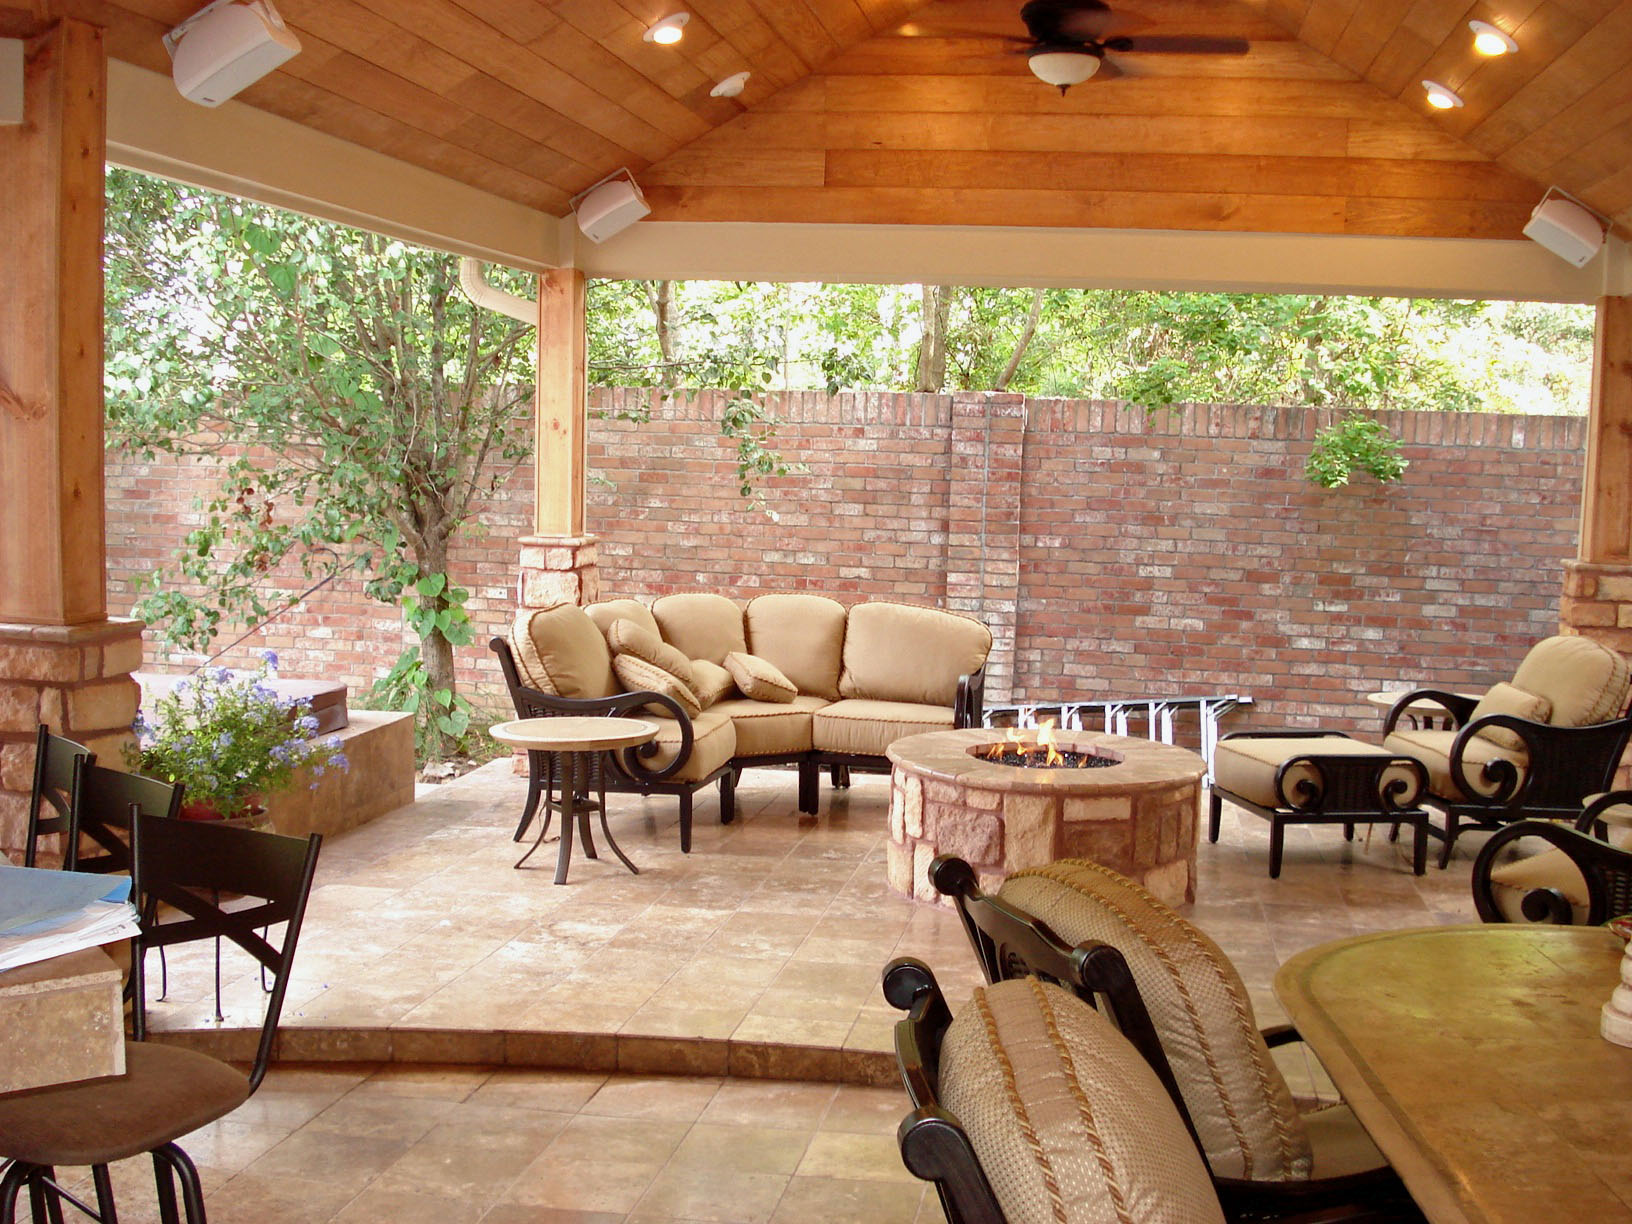 Houston Outdoor Living Spaces - Fire Pit And Spa! on Outdoor Living Spa  id=31928